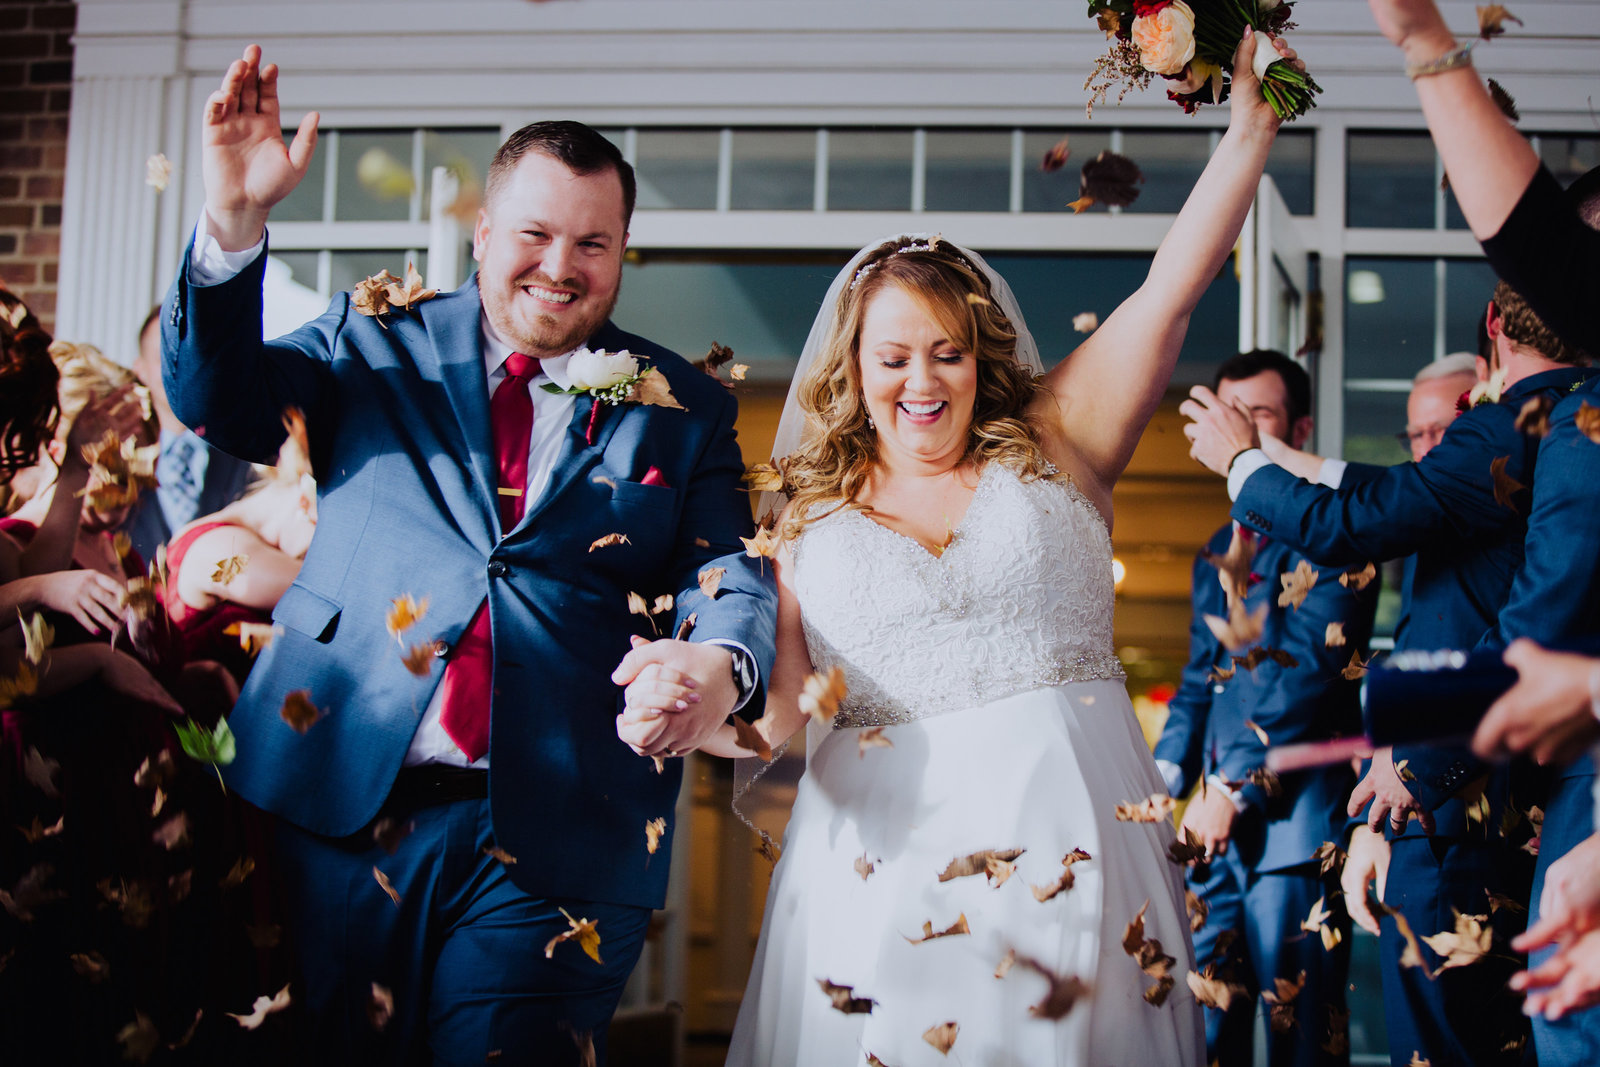 Erica Kay Photography - Jena & Joe Wedding-544